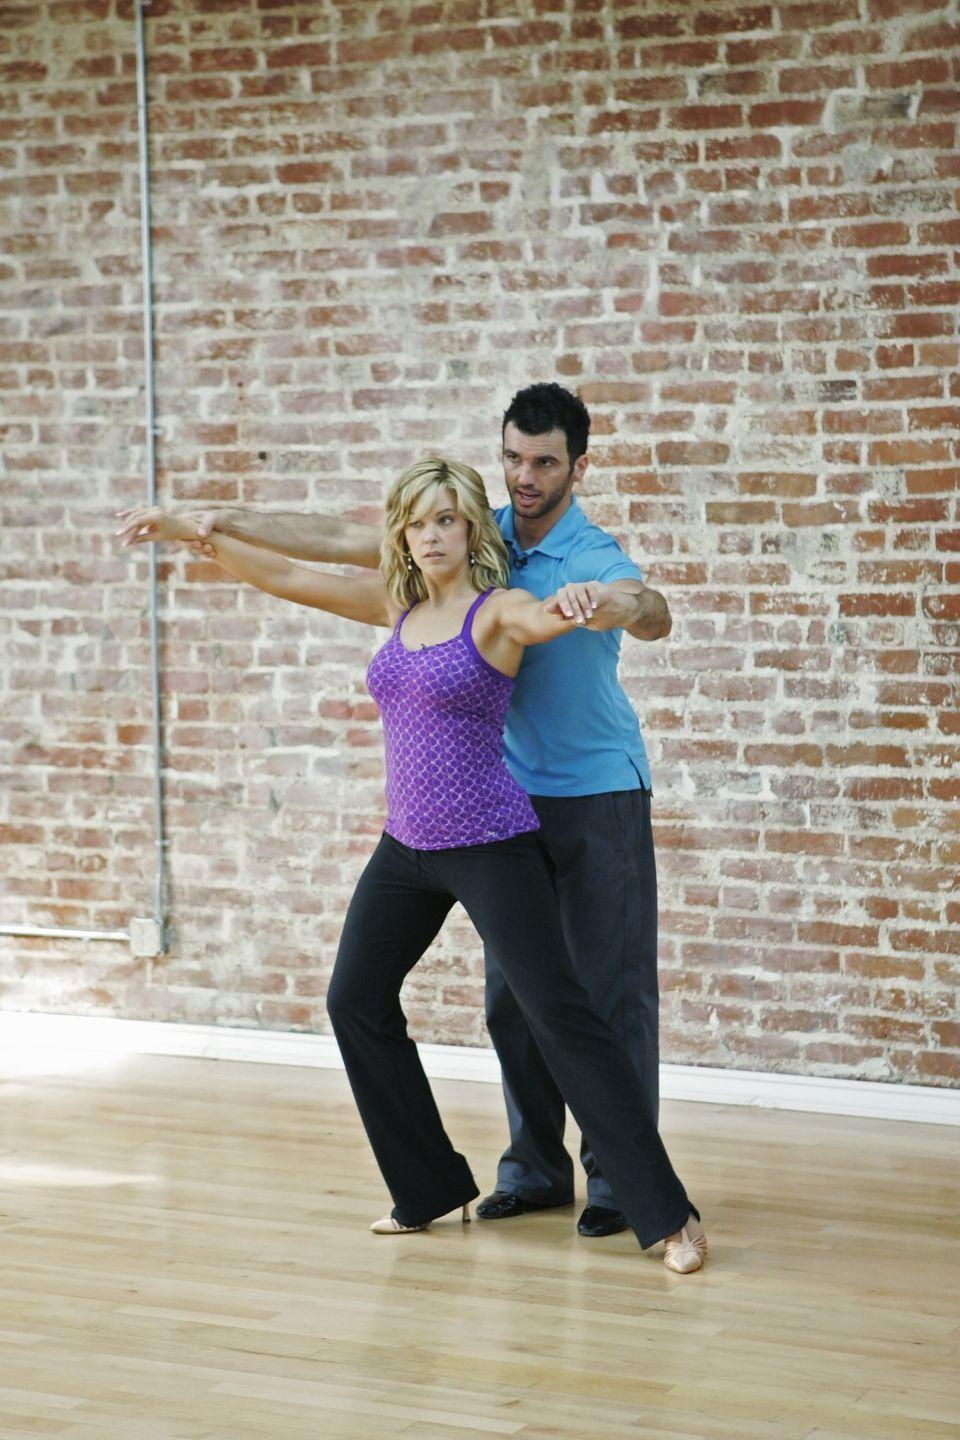 <p>Kate and her partner Tony Dovolani had a lot to overcome in season 10. The professional dancer threatened to quit because of how difficult the mom of eight was to work with. You could tell in their routines just how bad their chemistry was. Kate ended up getting kicked off during week 5.</p>